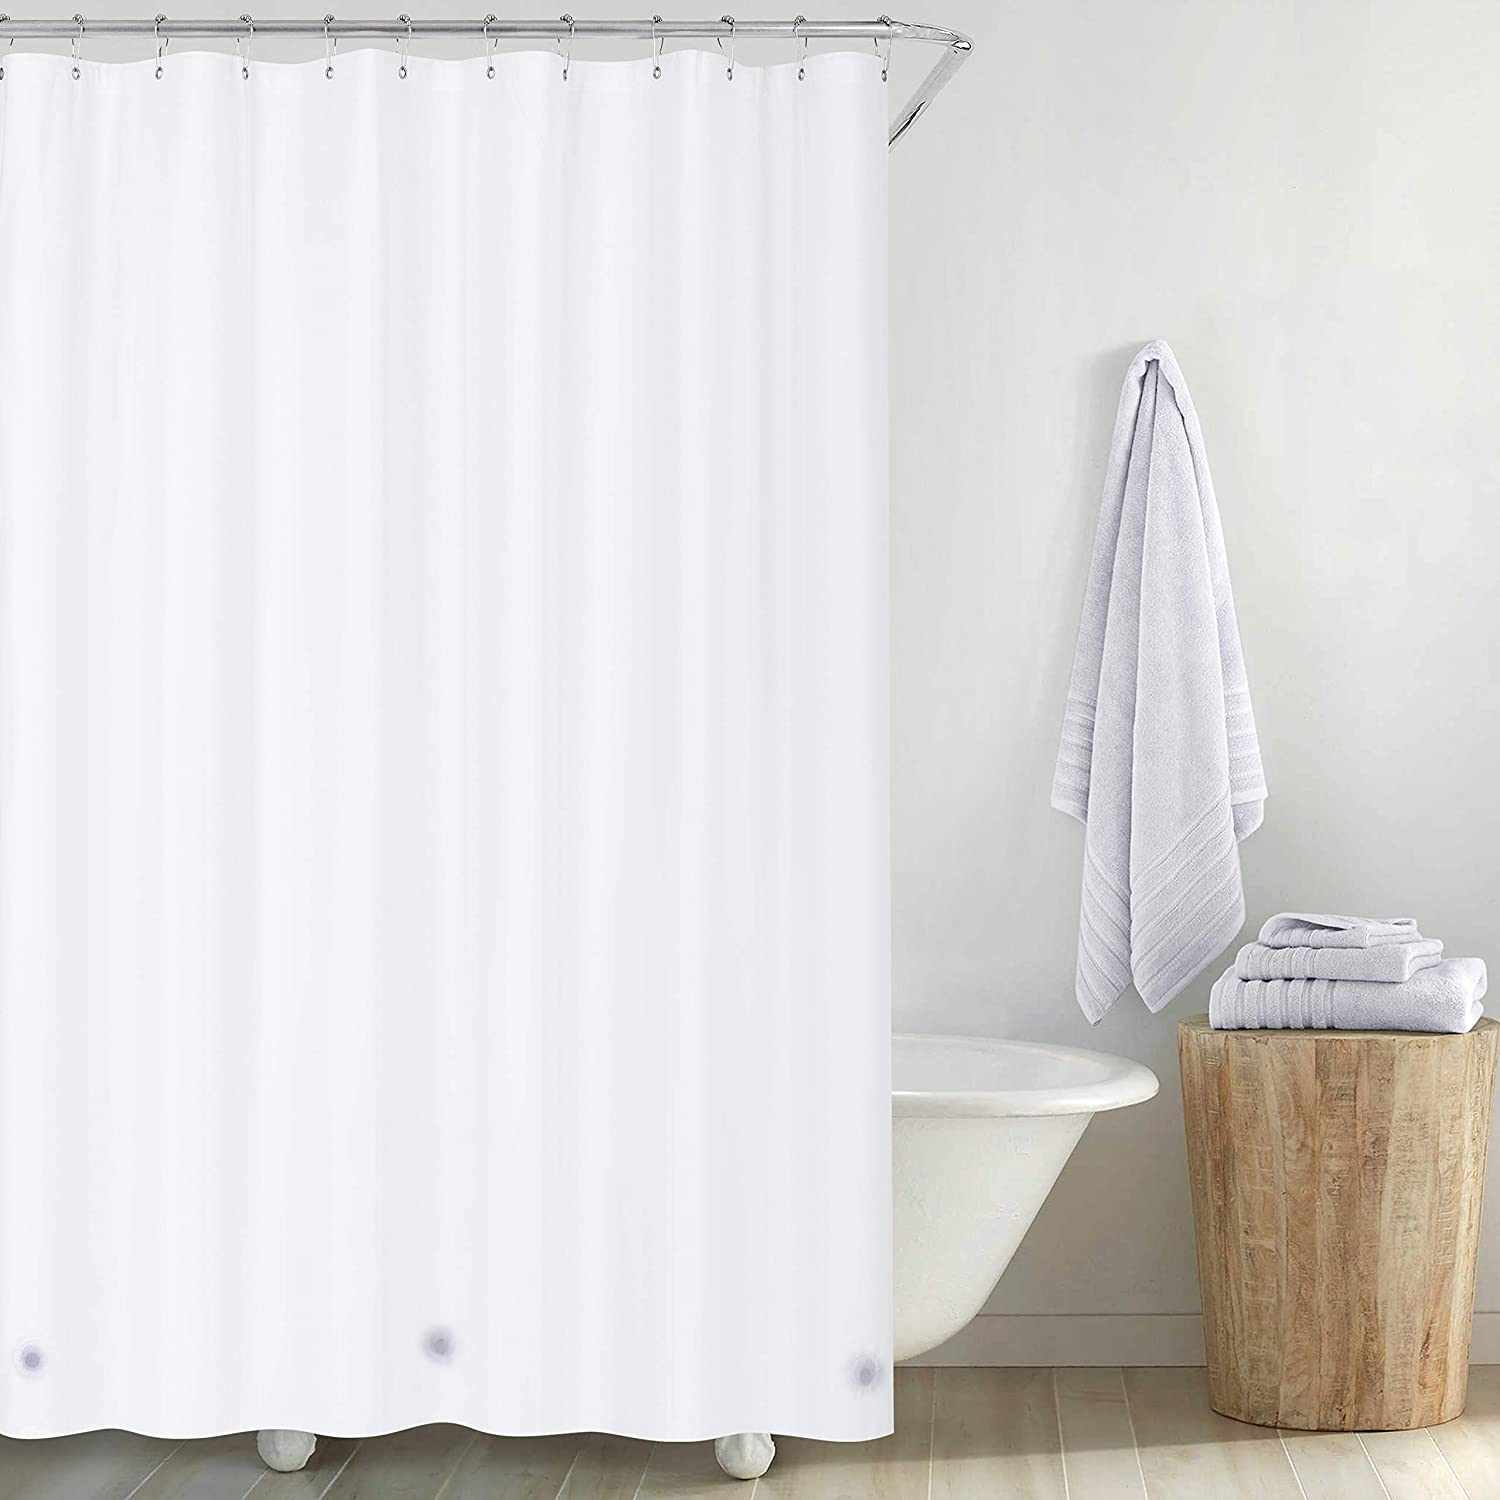 Utopia Bedding 10 Guage Heavy Duty Clear Shower Curtain Liner 72 by 72 Inches Rust Proof Grommets Odor Less and Non-Toxic